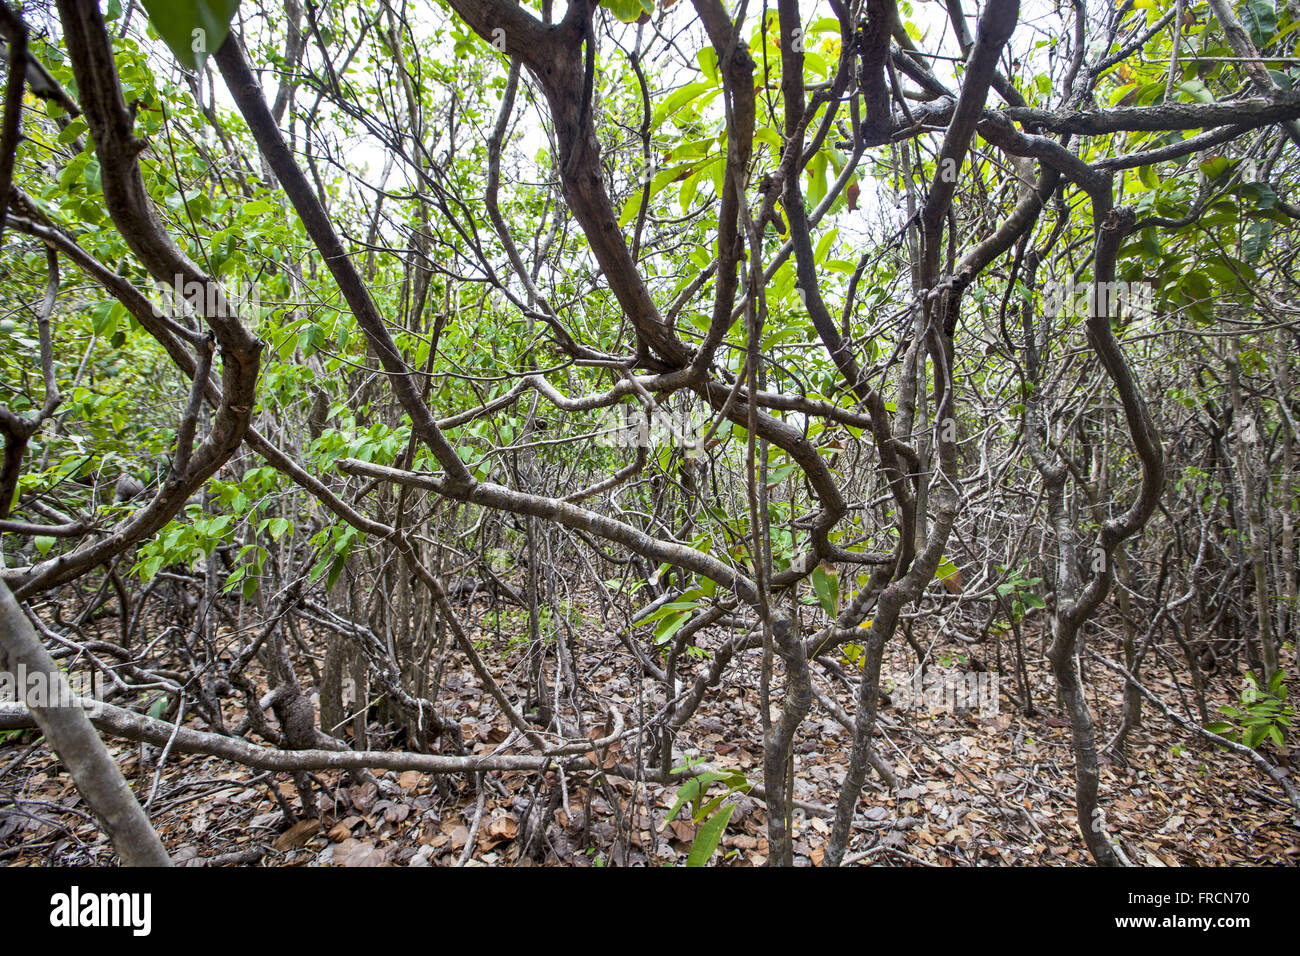 Diverse vegetation as cipo, angelica, ironwood Ecological Sanctuary in Pipa - Stock Image